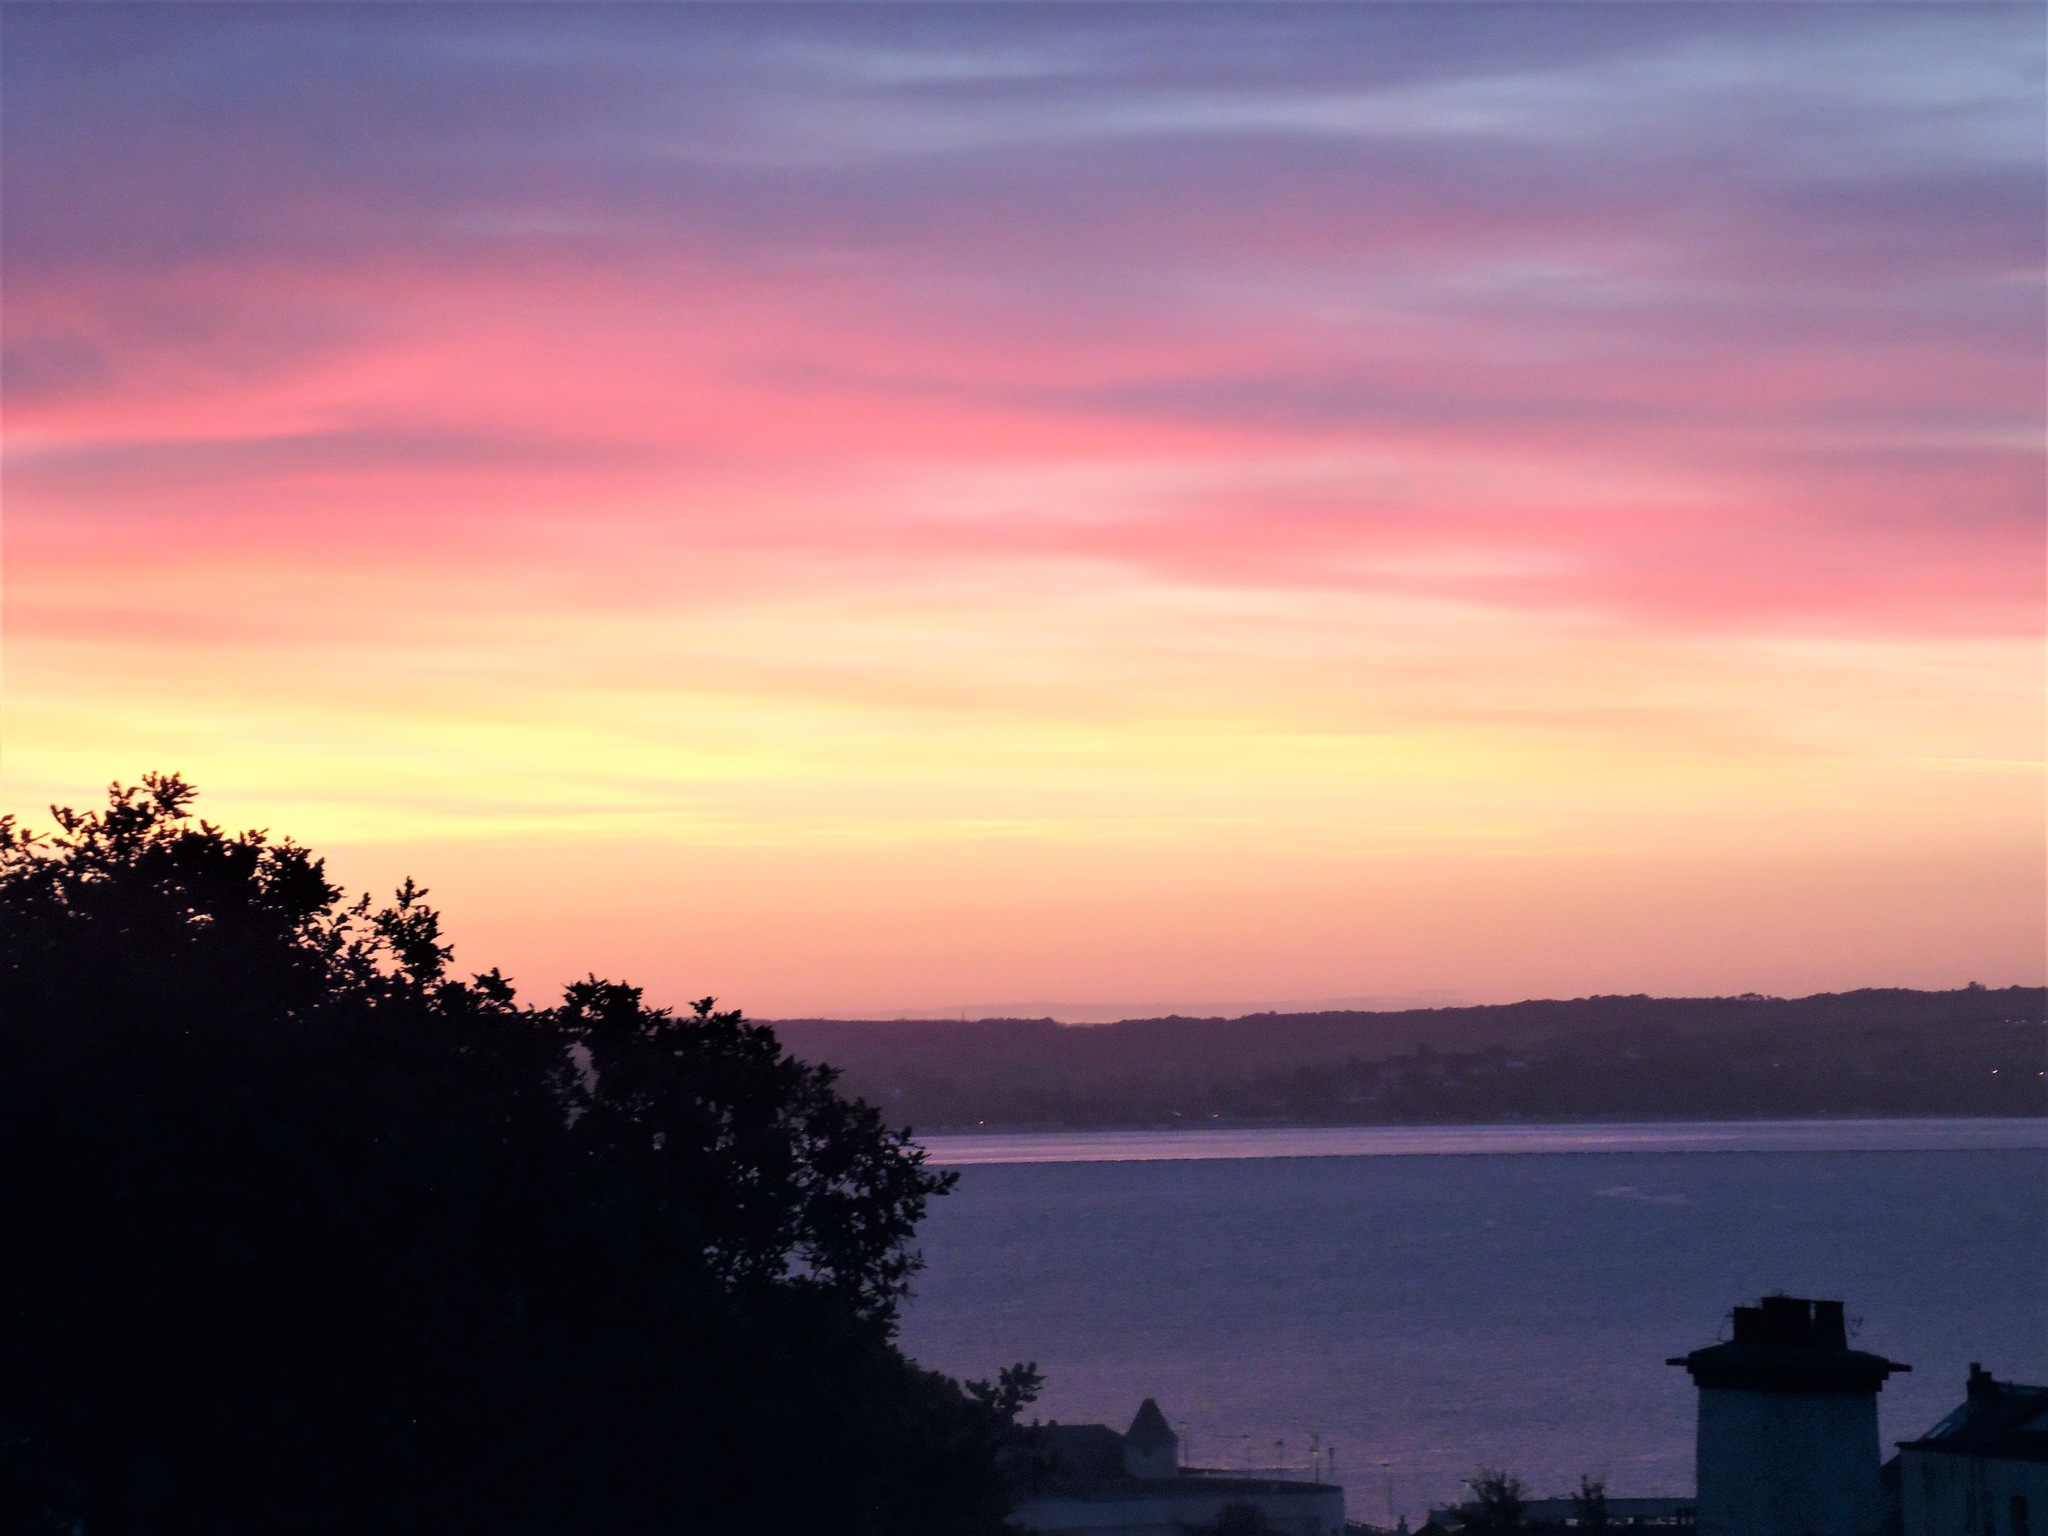 Red sky in the morning Shepherds warning by Sandra Wright